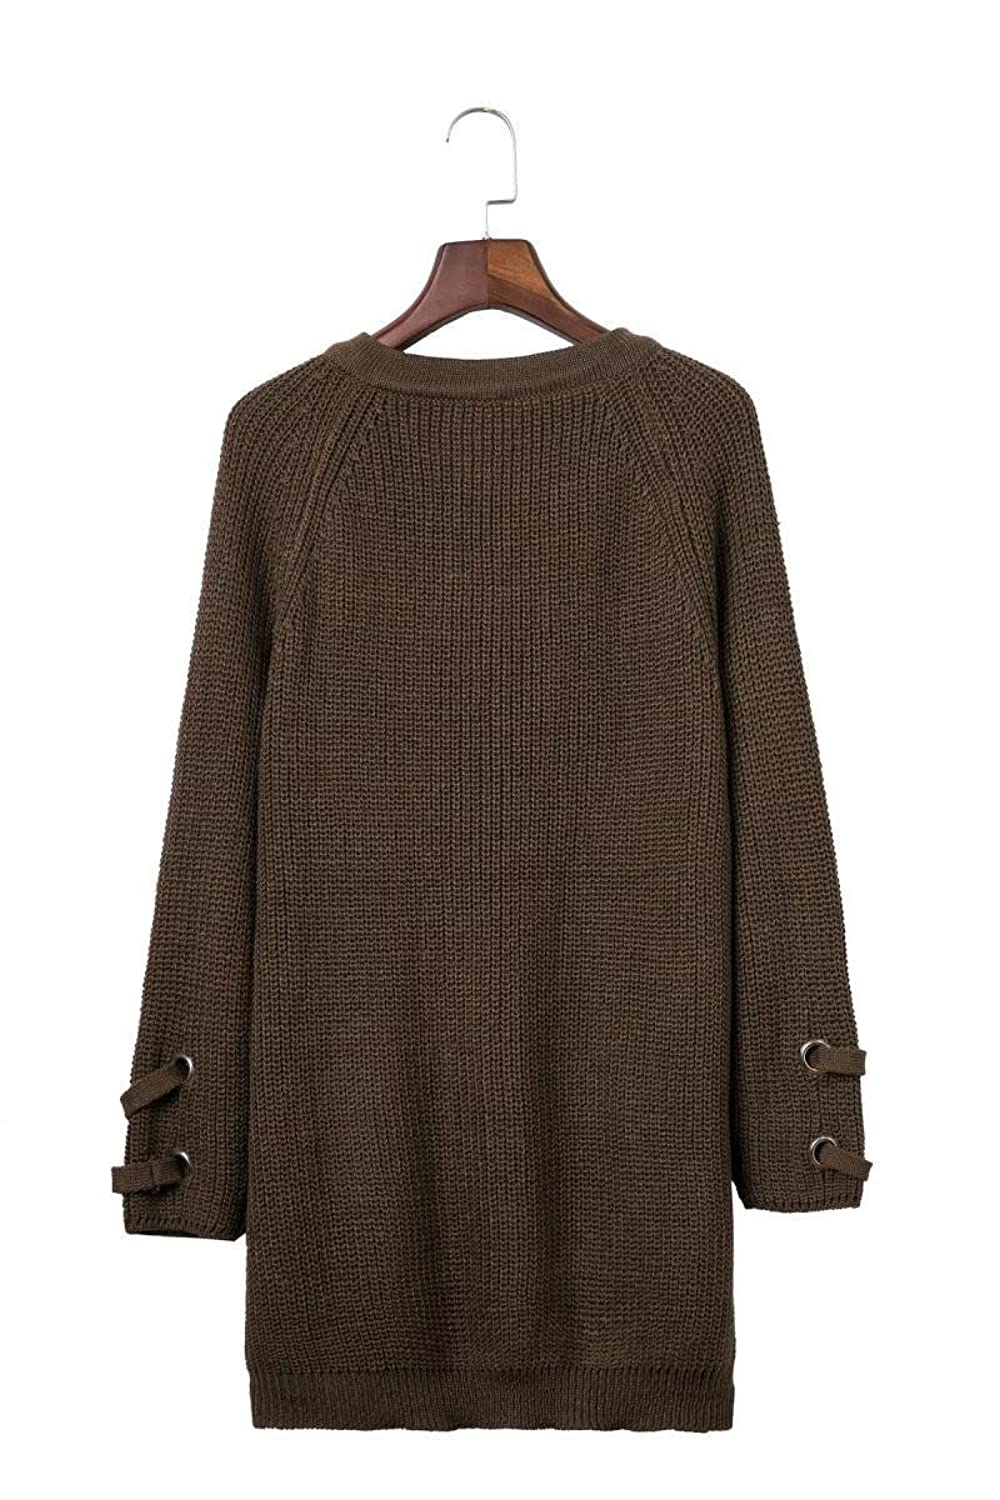 Rayley Women's Long Sleeve Lace Up V-Neck Knit Pullover Sweater Dress Top